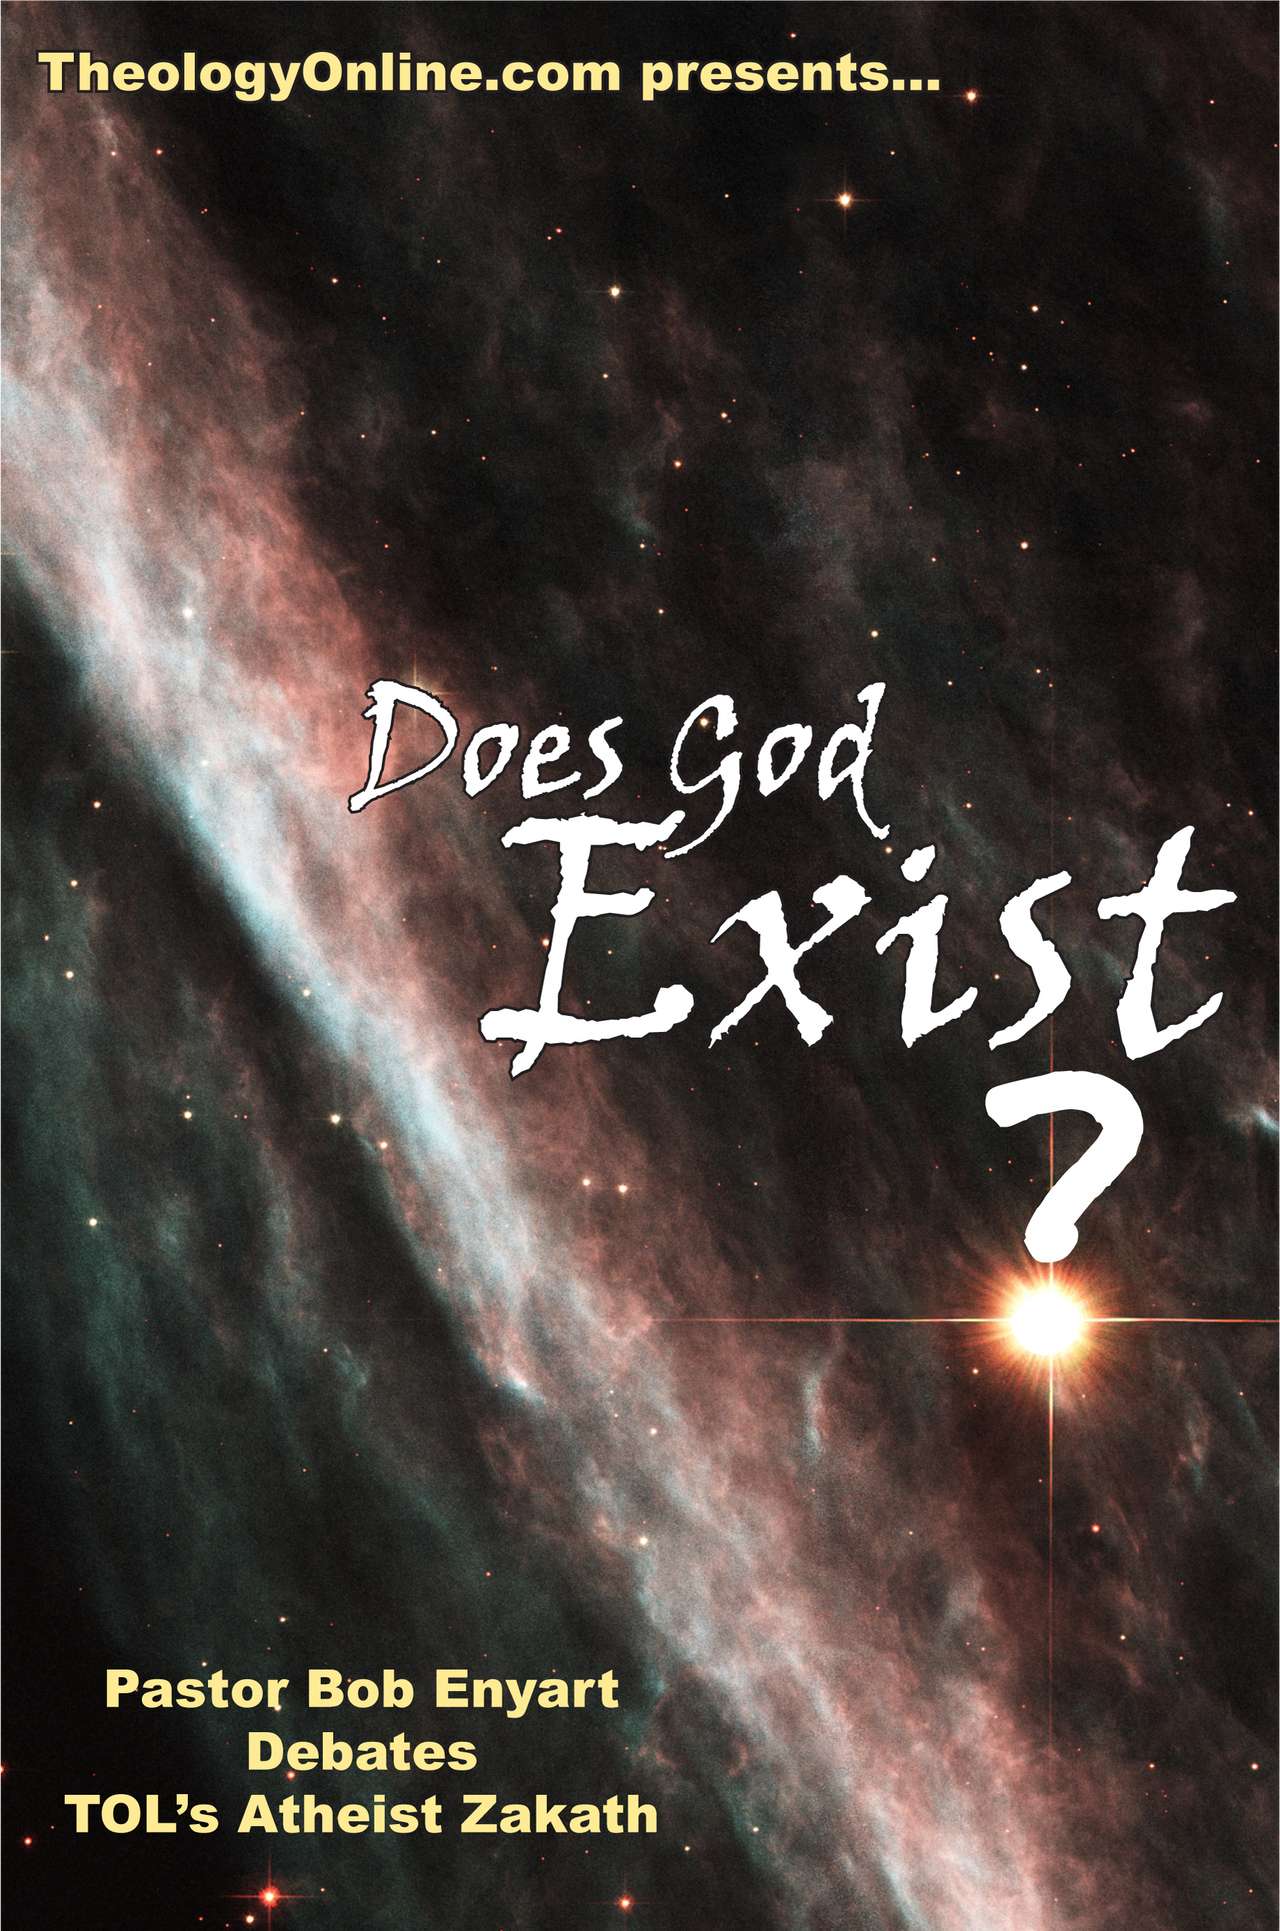 Cover of Bob's debate paperback: Does God Exist?